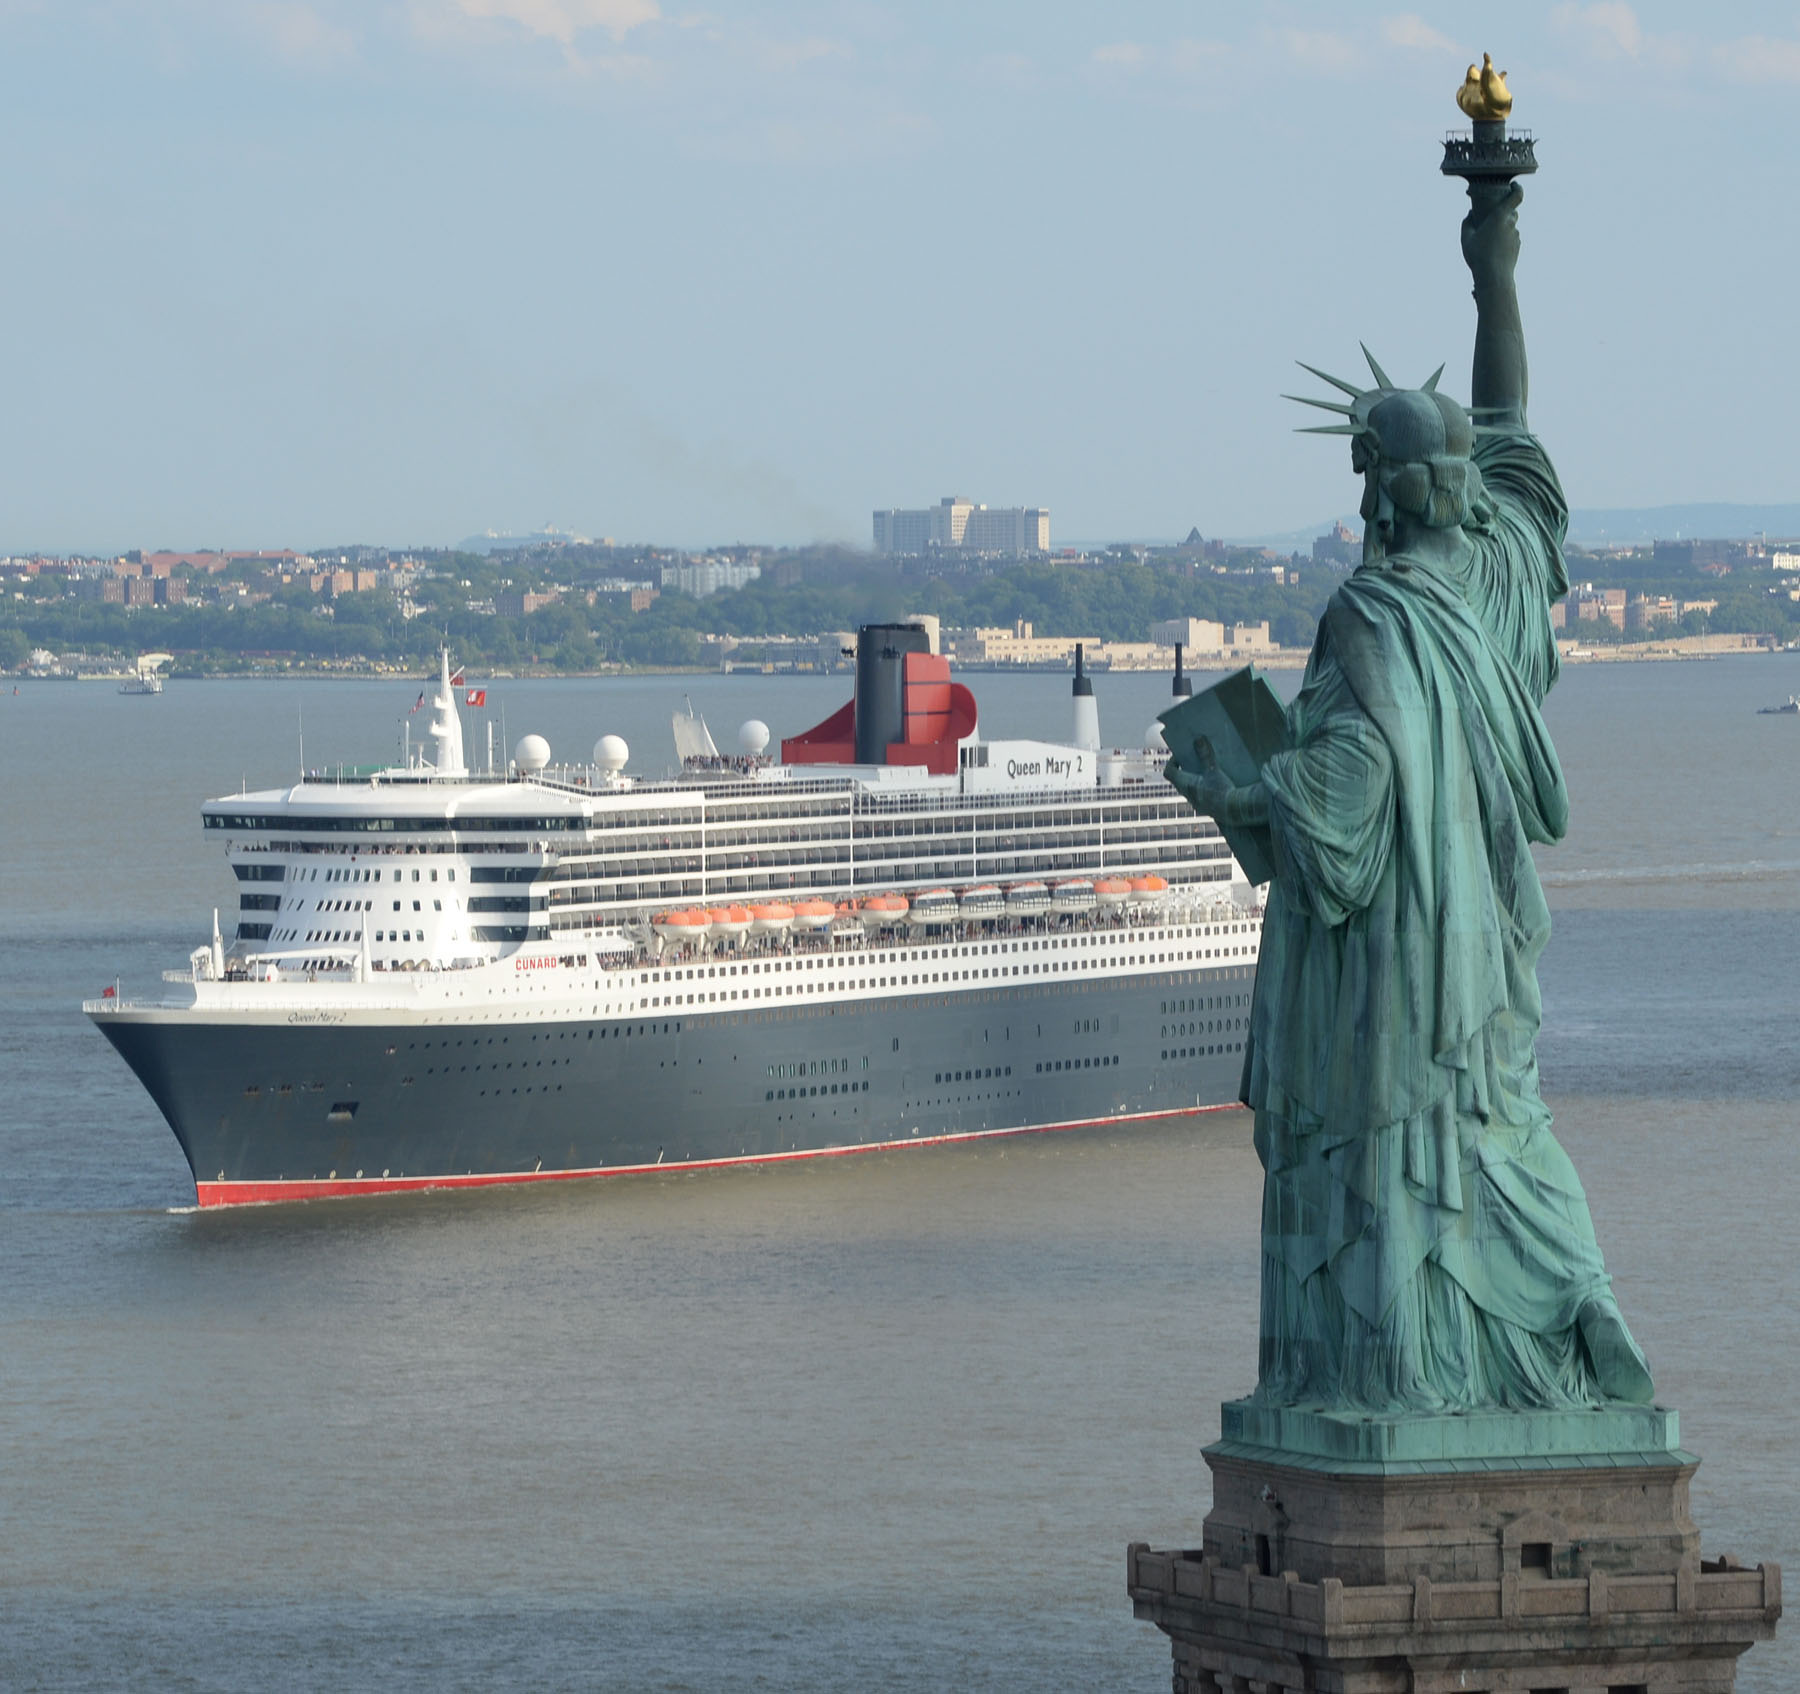 200 AND COUNTING! Queen Mary 2 celebrates 200th Atlantic crossing